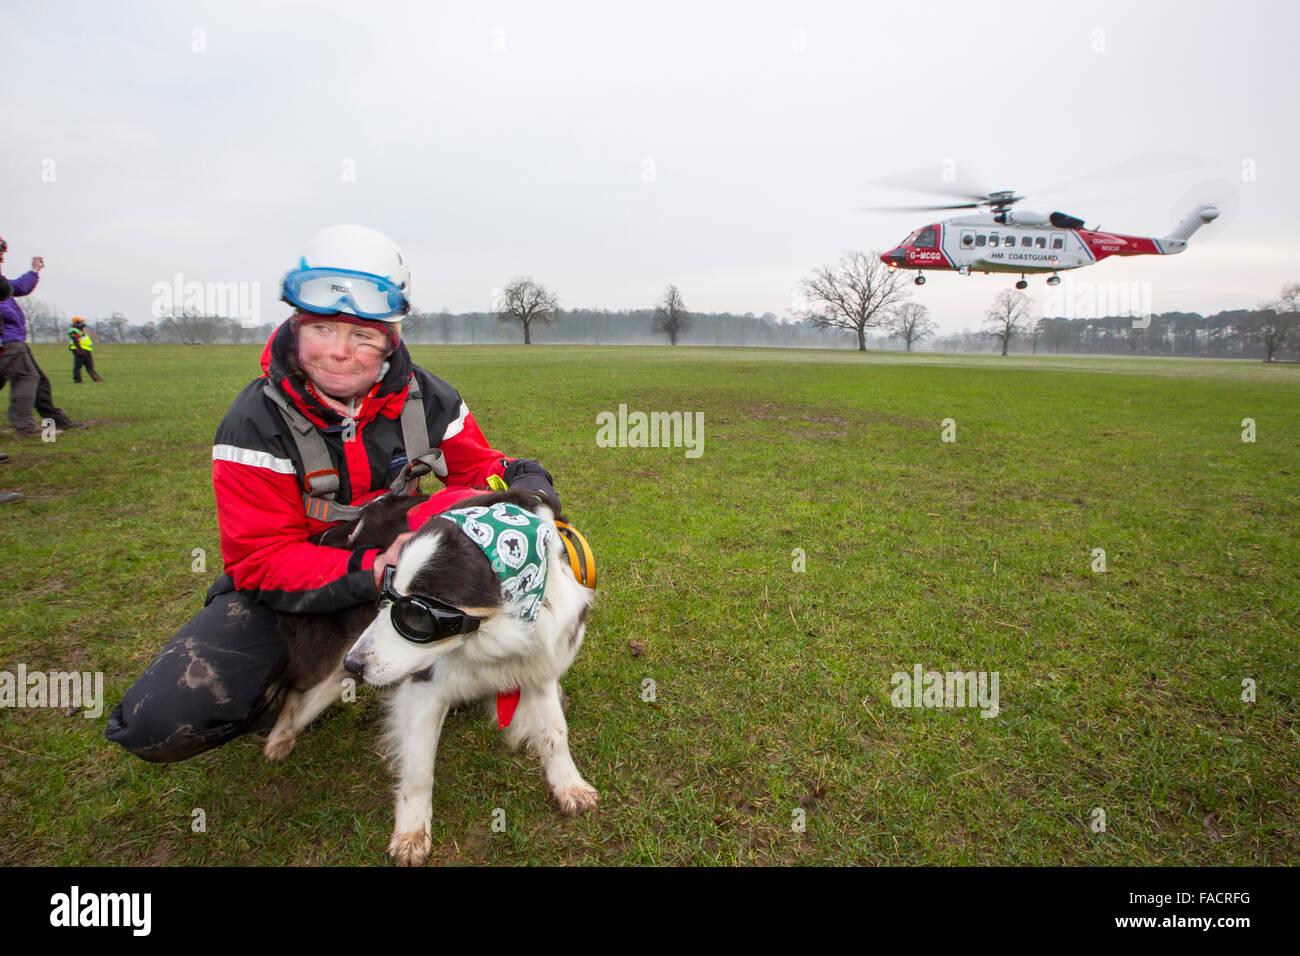 A Sikorsky S92 Helicopters run operated by Bristows at Carlton Hall in Penrith, Cumbria, UK to train with Lake district - Stock Image